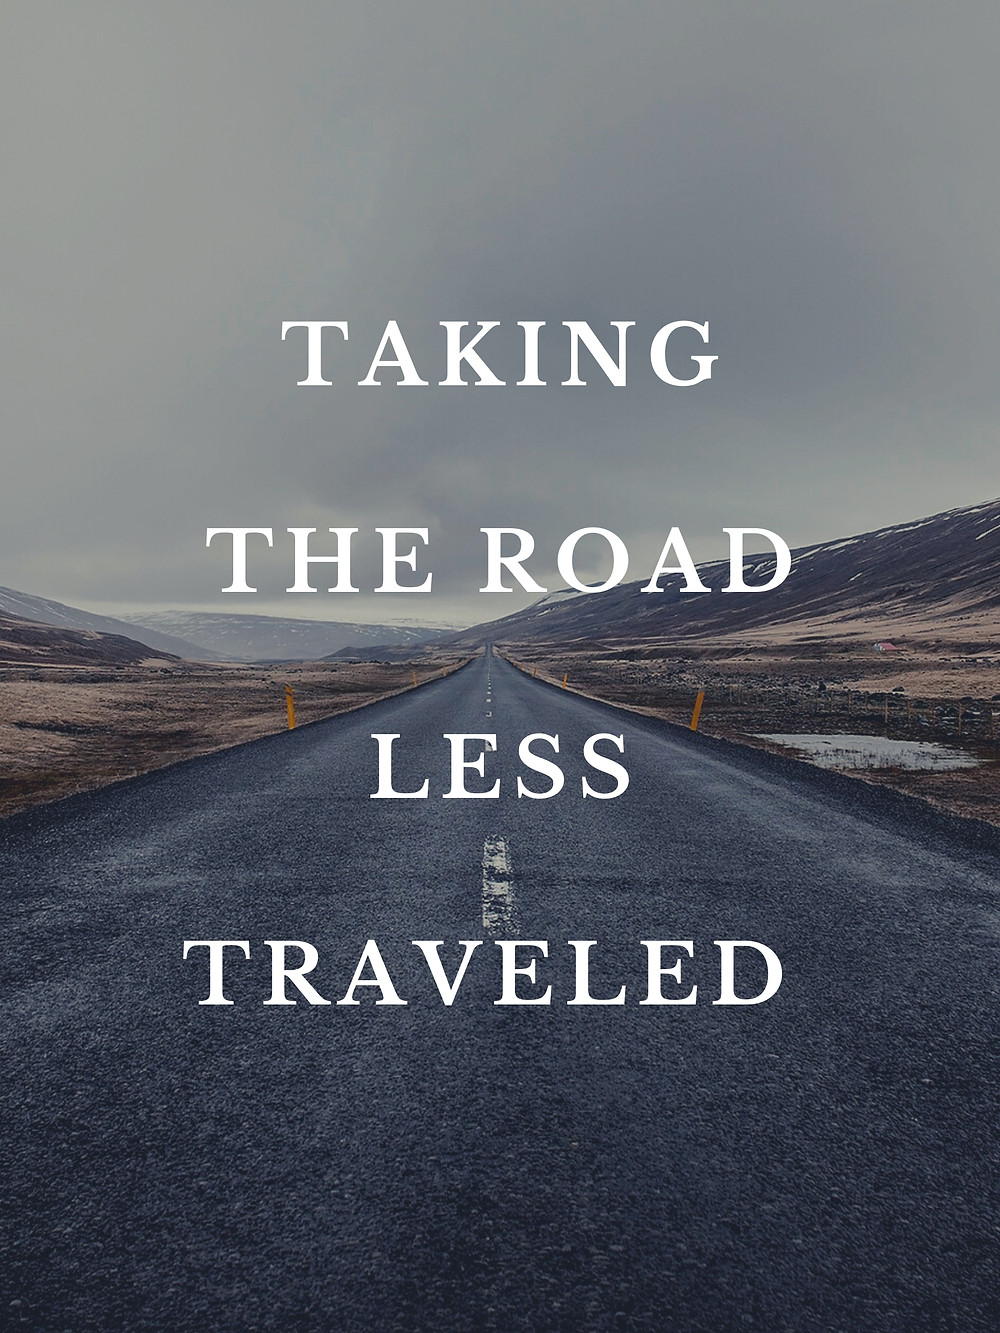 Taking the road less traveled